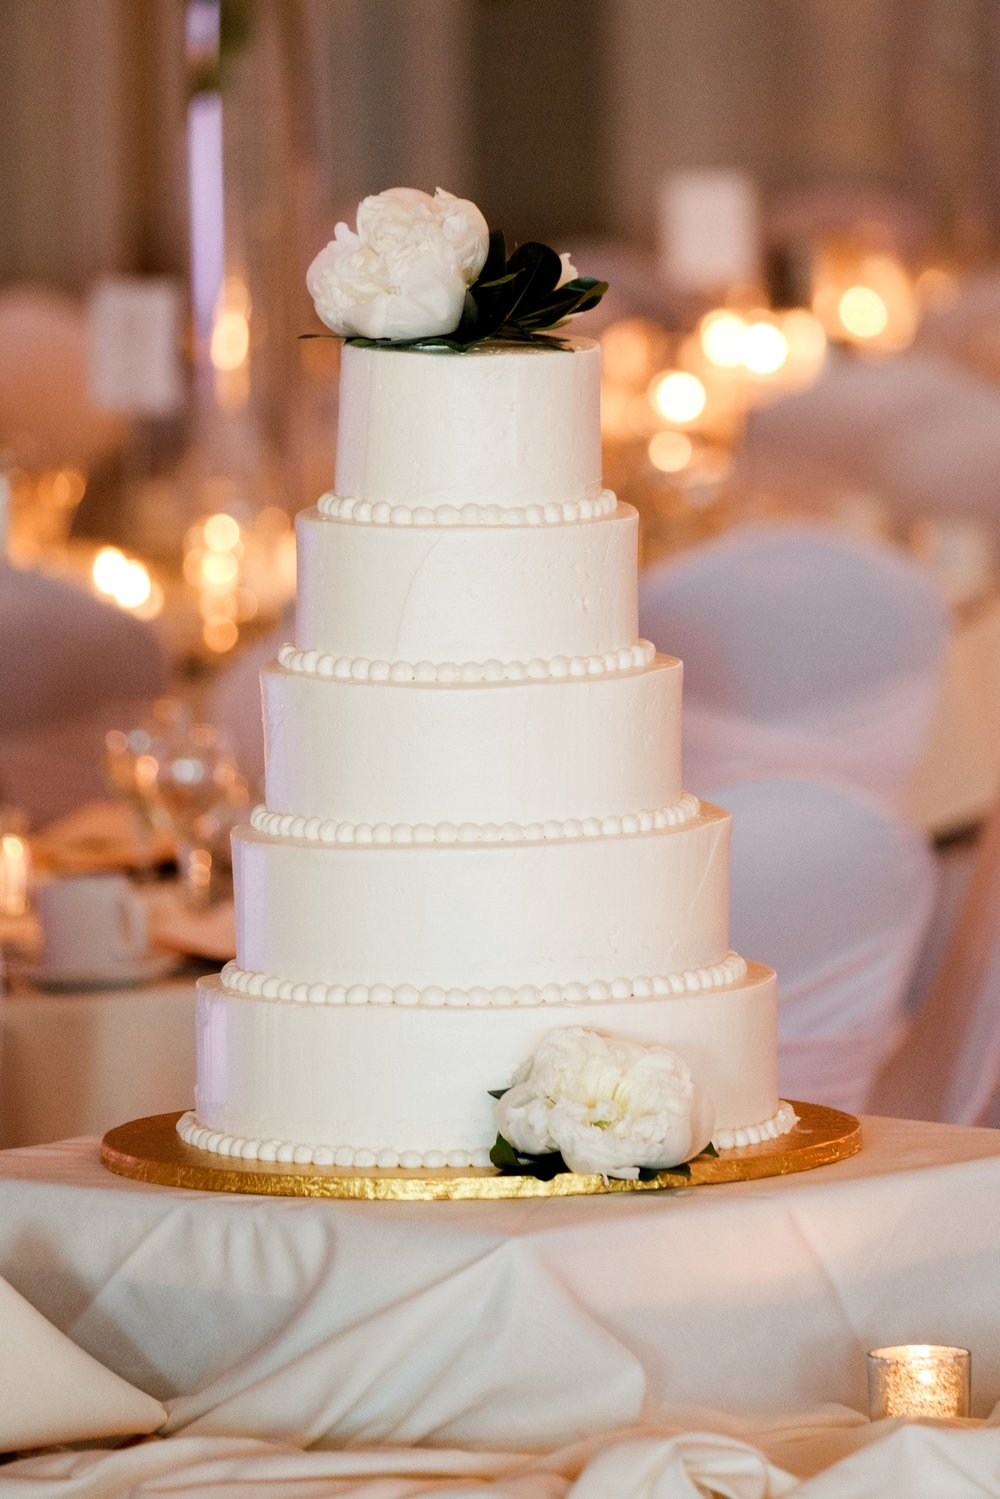 wedding cake at greysolon in duluth, mn